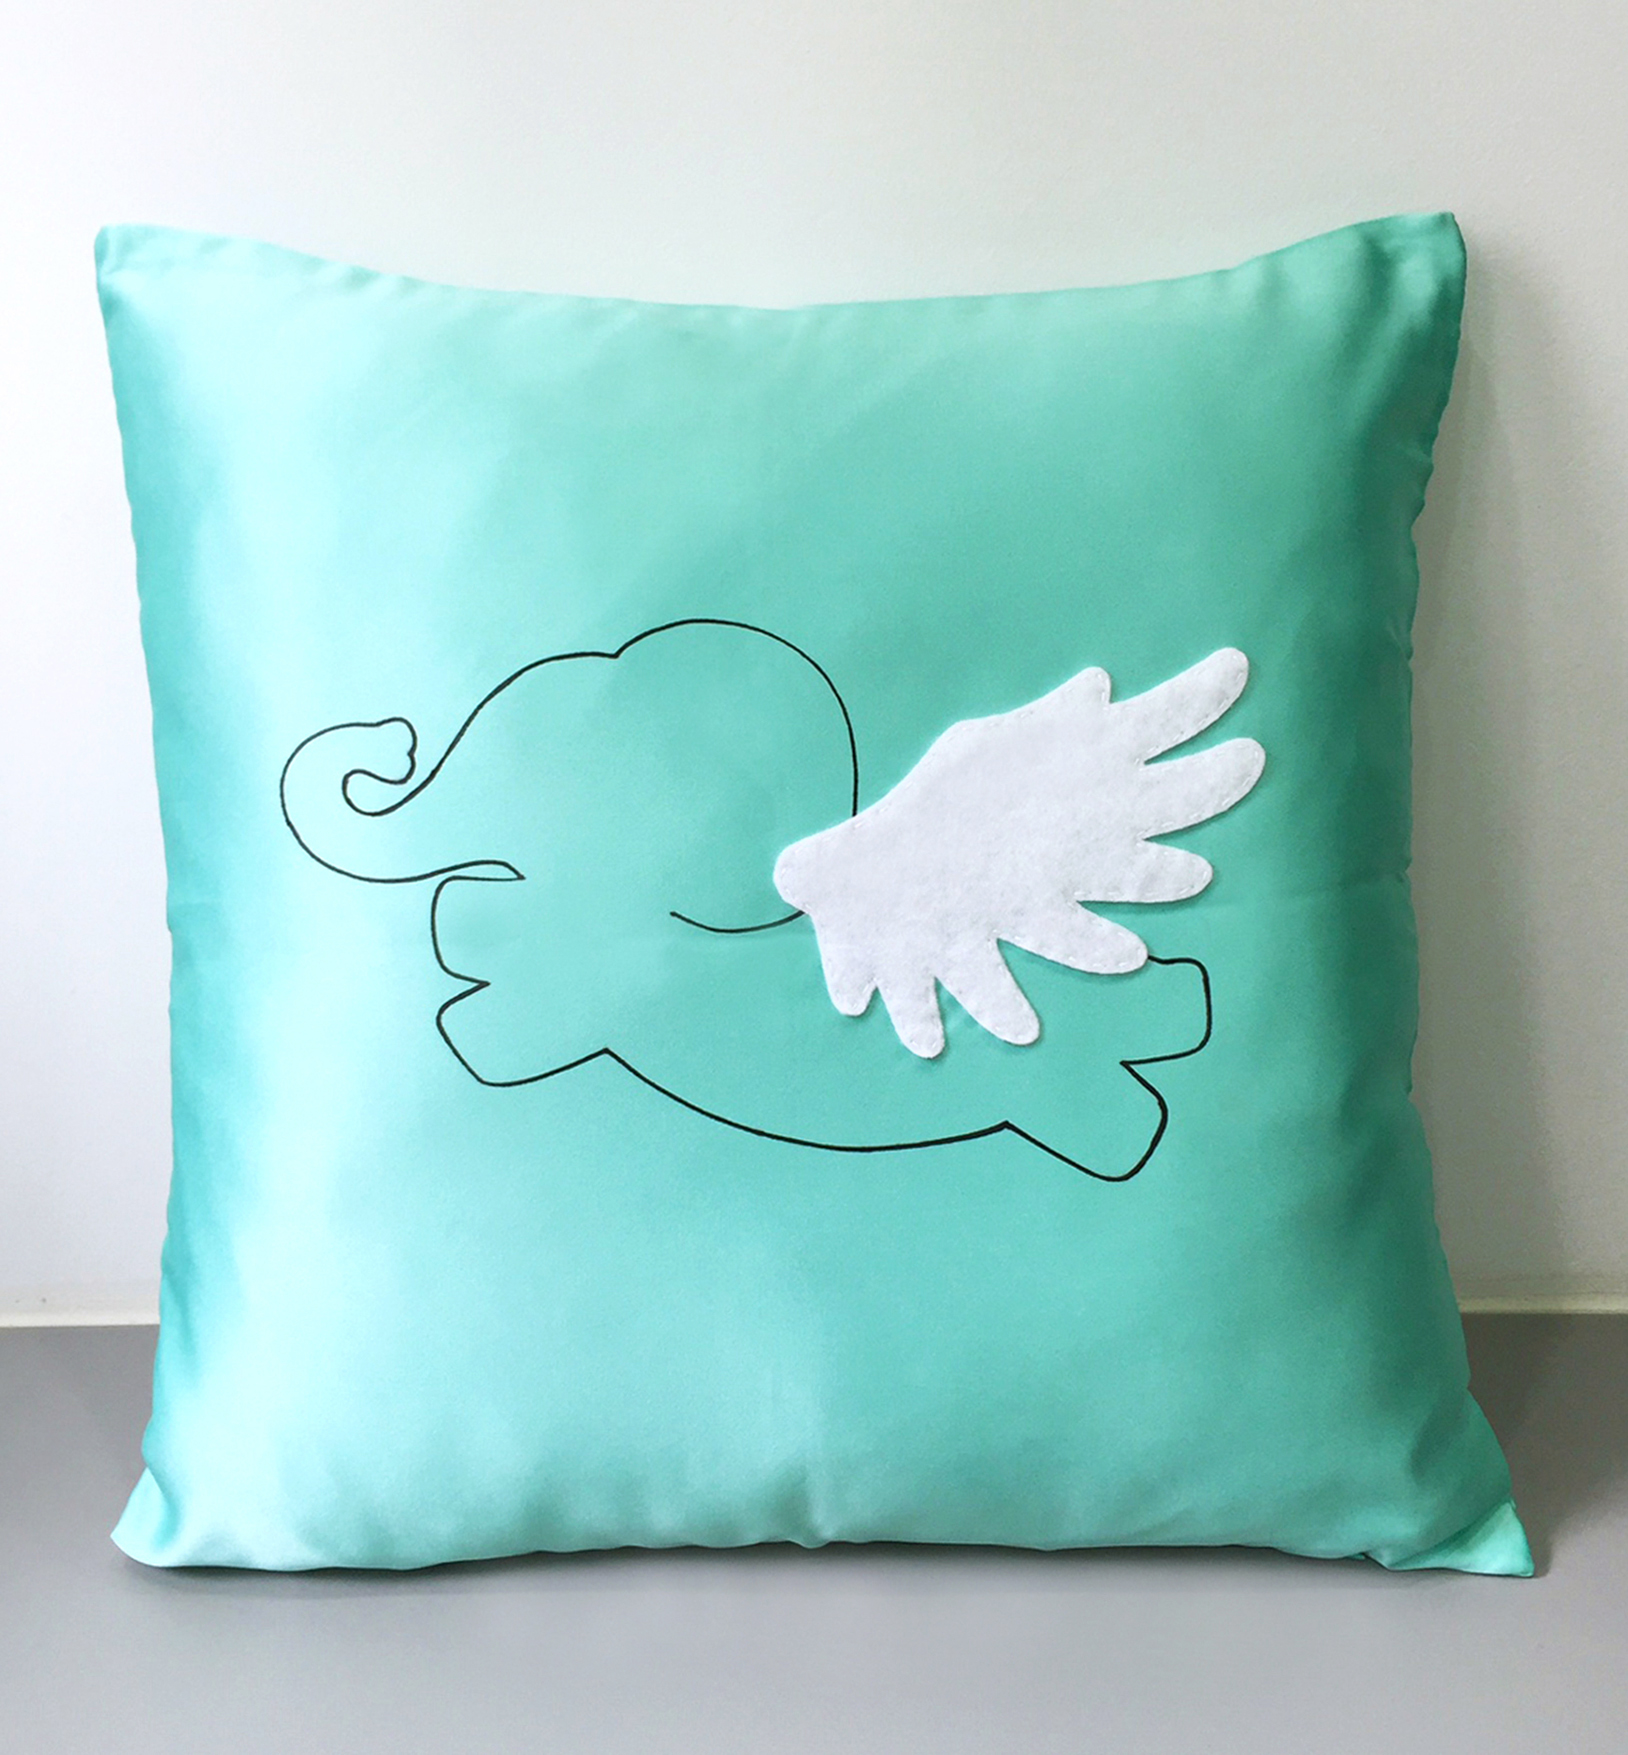 Flying Elephant Mint Green Decorative Pillow Cover. Cute Animal Wonderland 17inch Cushion Cover. Children Room Pillow. Mint Nursery Decor